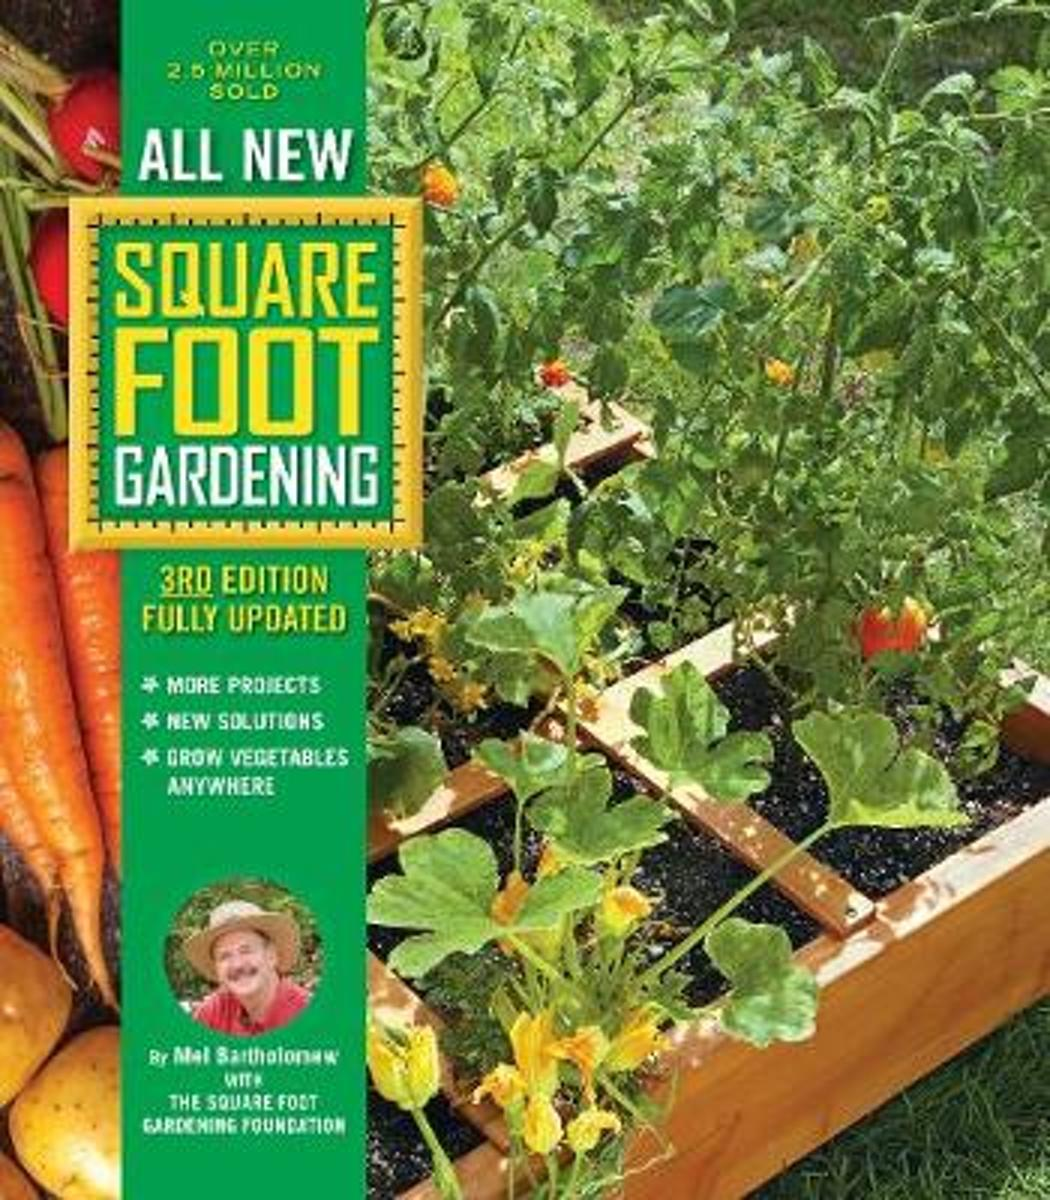 All New Square Foot Gardening, 3rd Edition, Fully Updated image